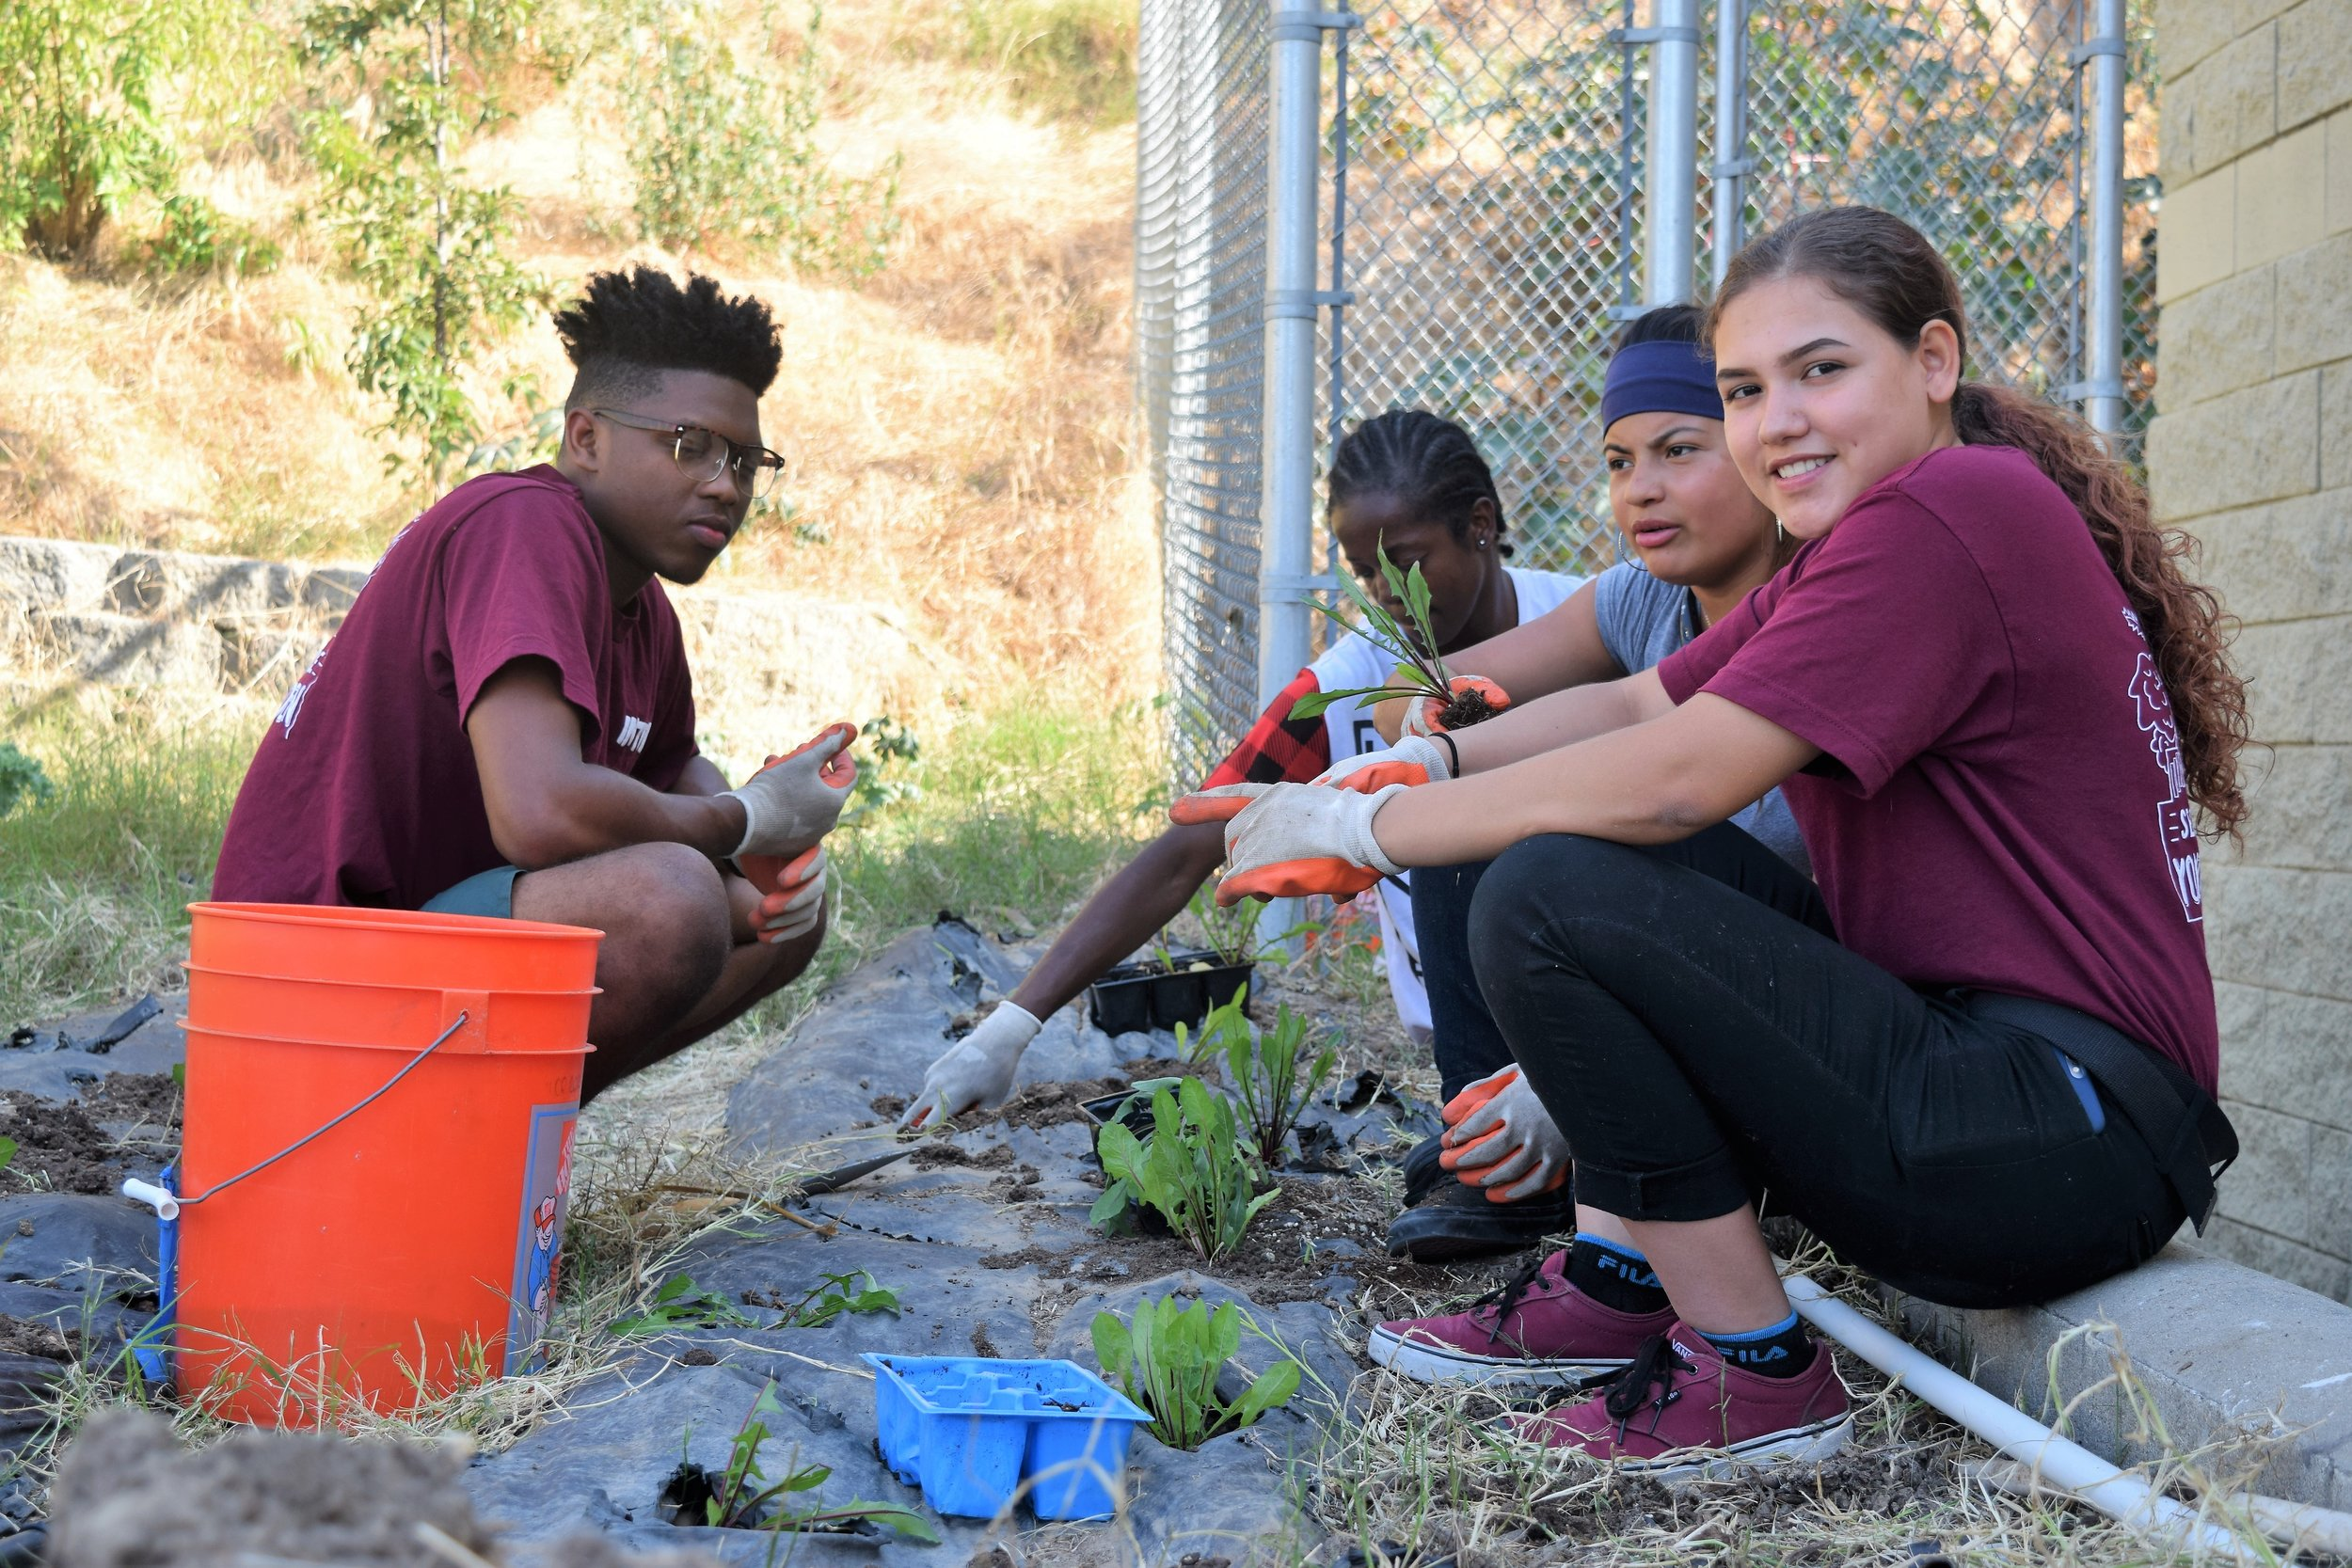 1 CSA box sign up = 1 youth employed in our garden - Here's a sample of what your Fall 2019 box might include (8-10 items, varies weekly):• Kale • Tomatoes• Zucchini • Cucumbers• Beets • Eggplant